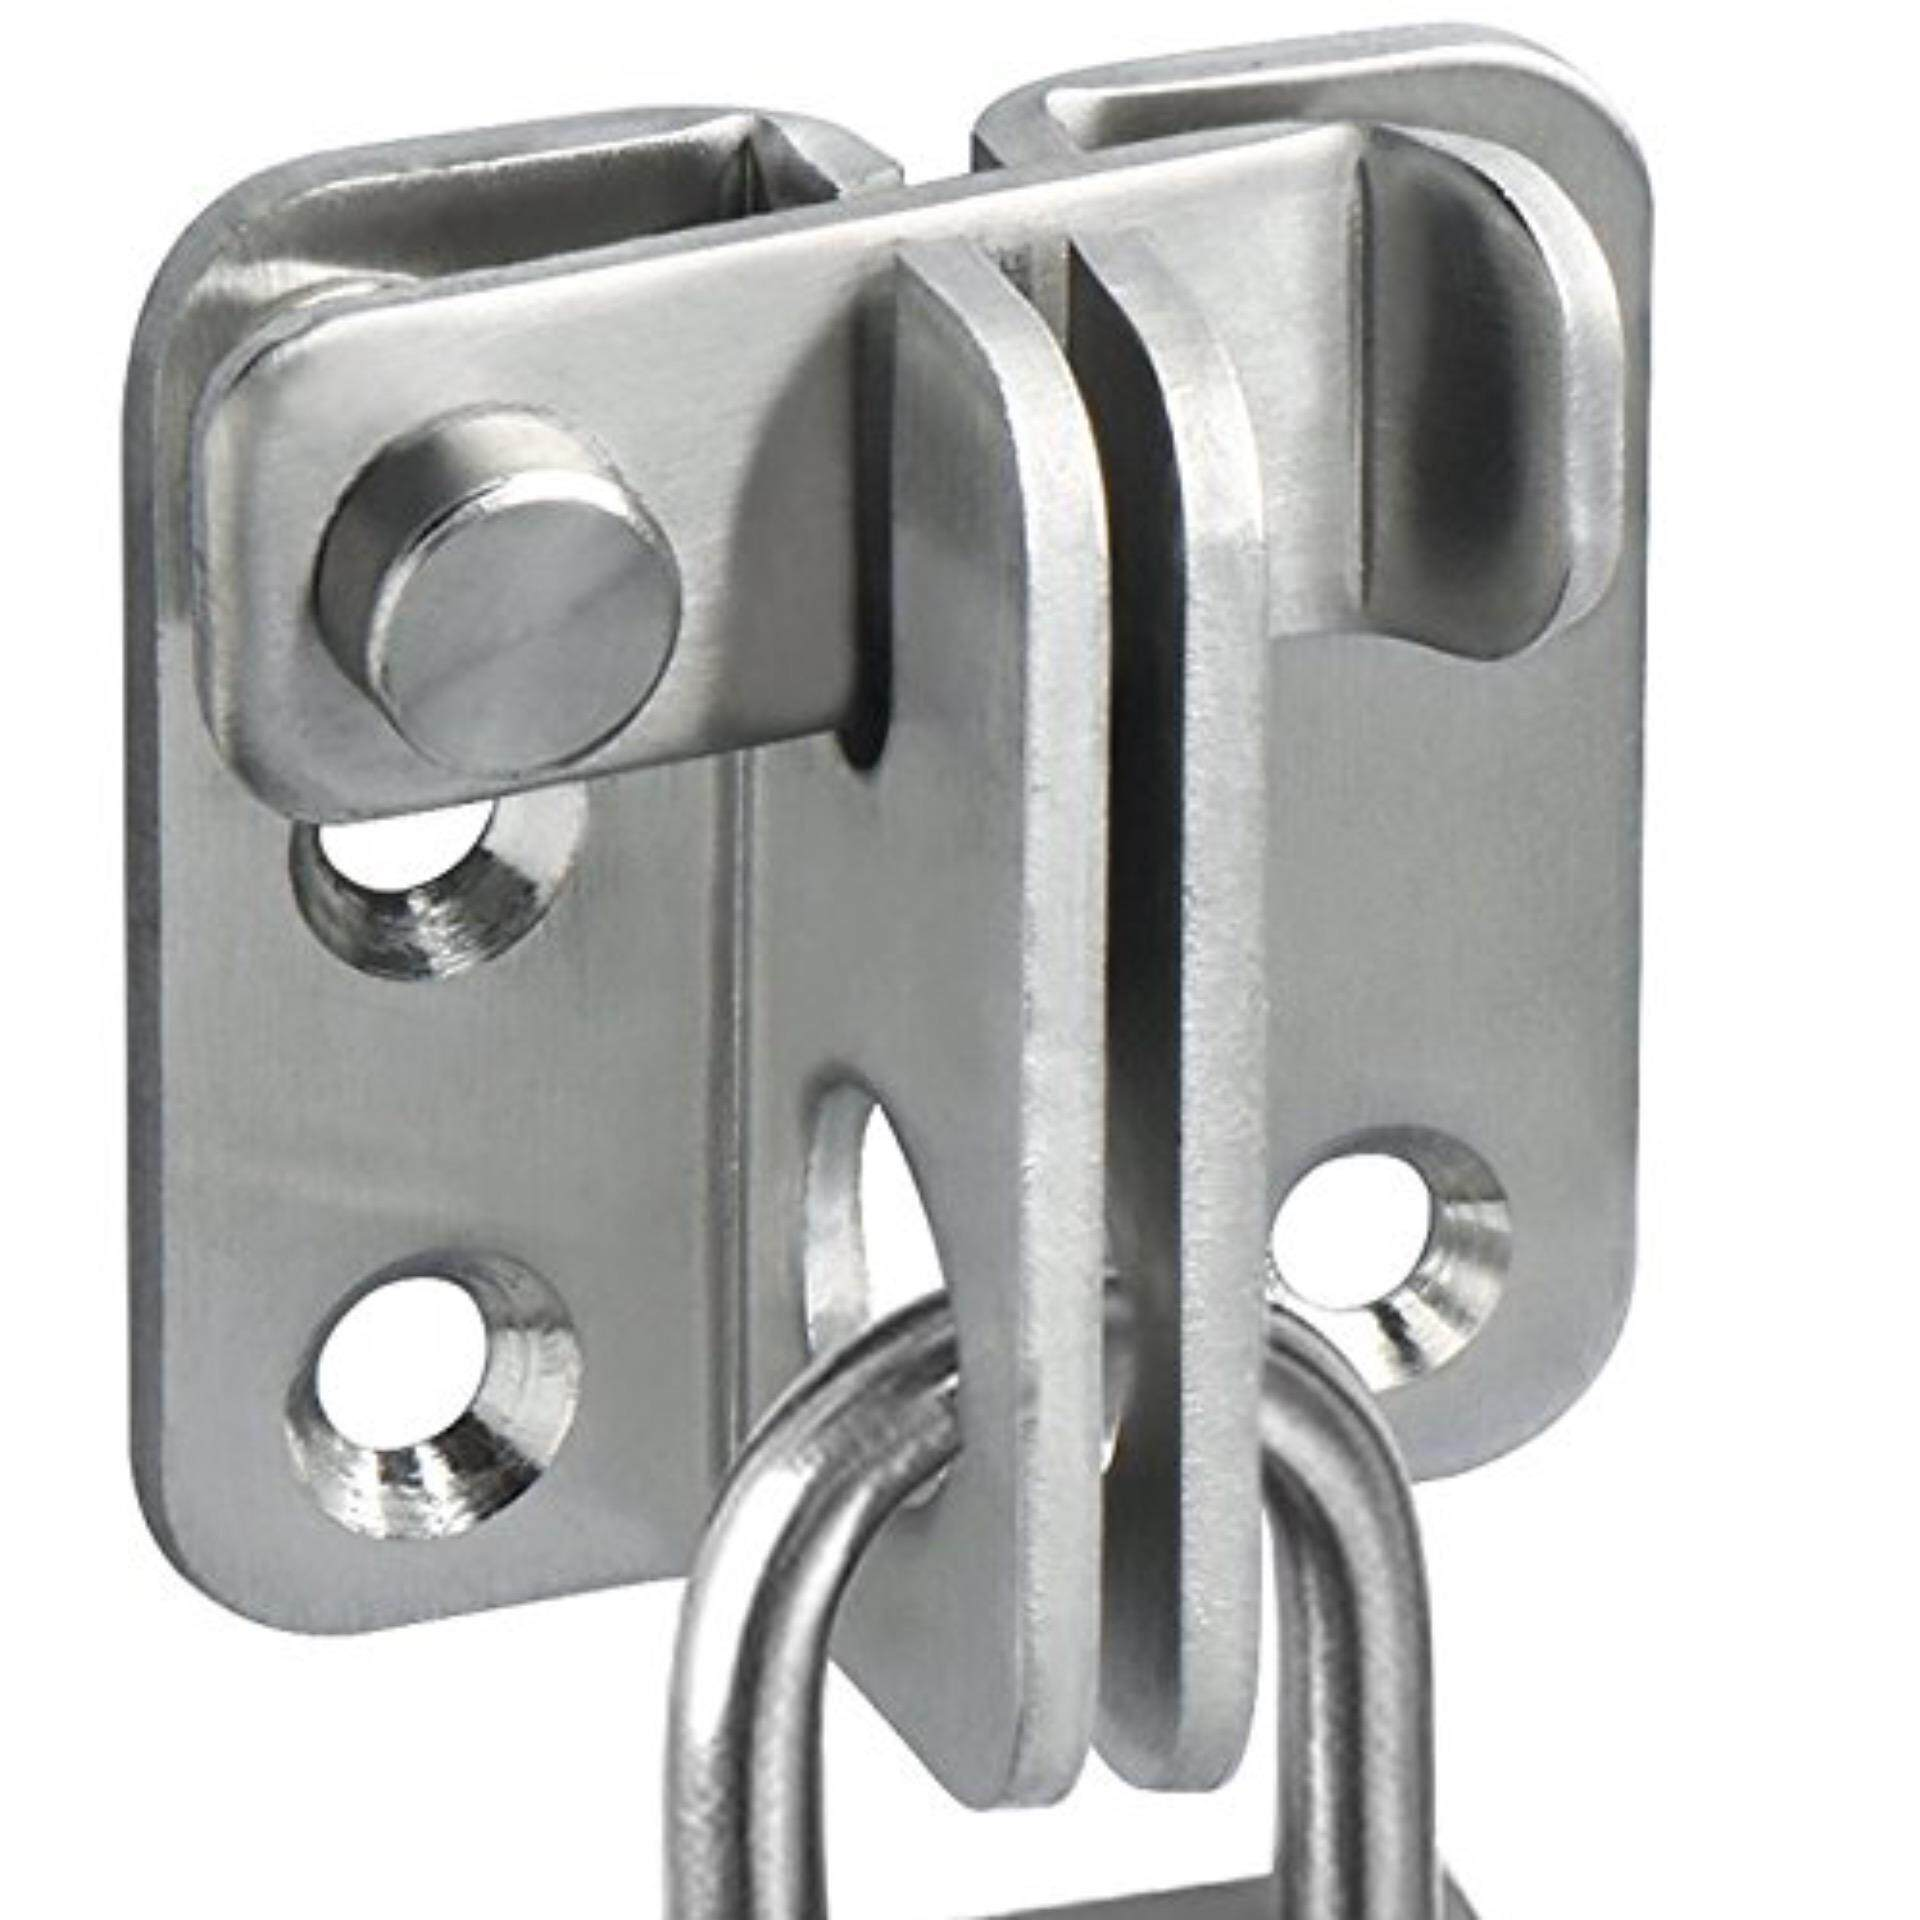 Buy Ms3001 Slide Bolt Latch Gate Latches Safety Door Lock Malaysia